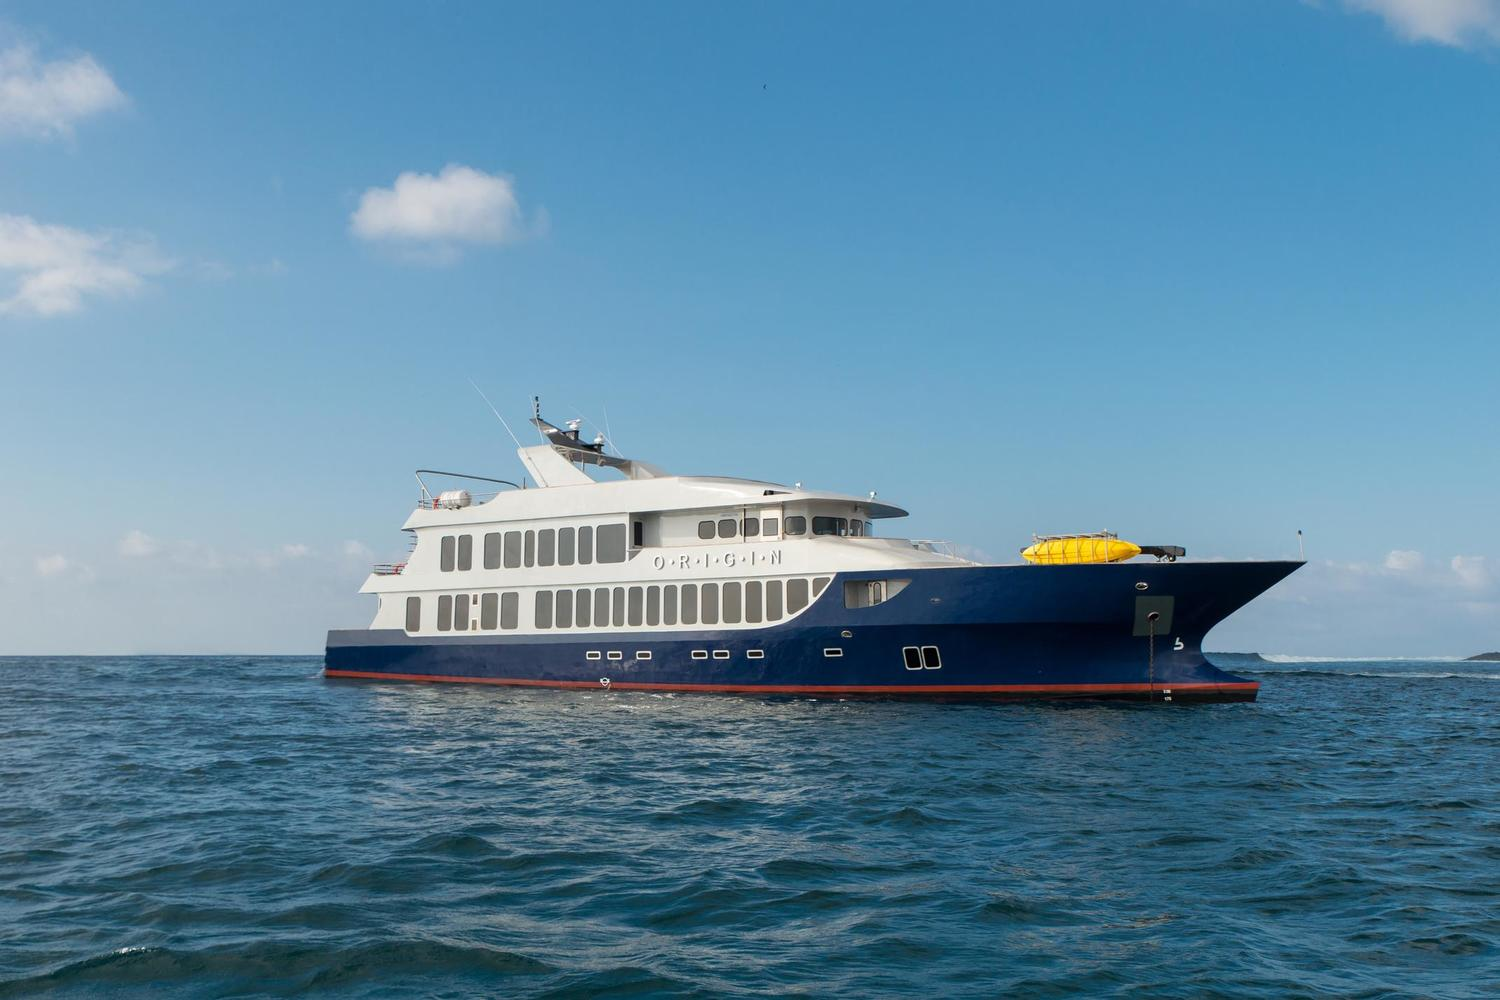 The M/V Origin is one of the most distinctive yachts in Galapagos